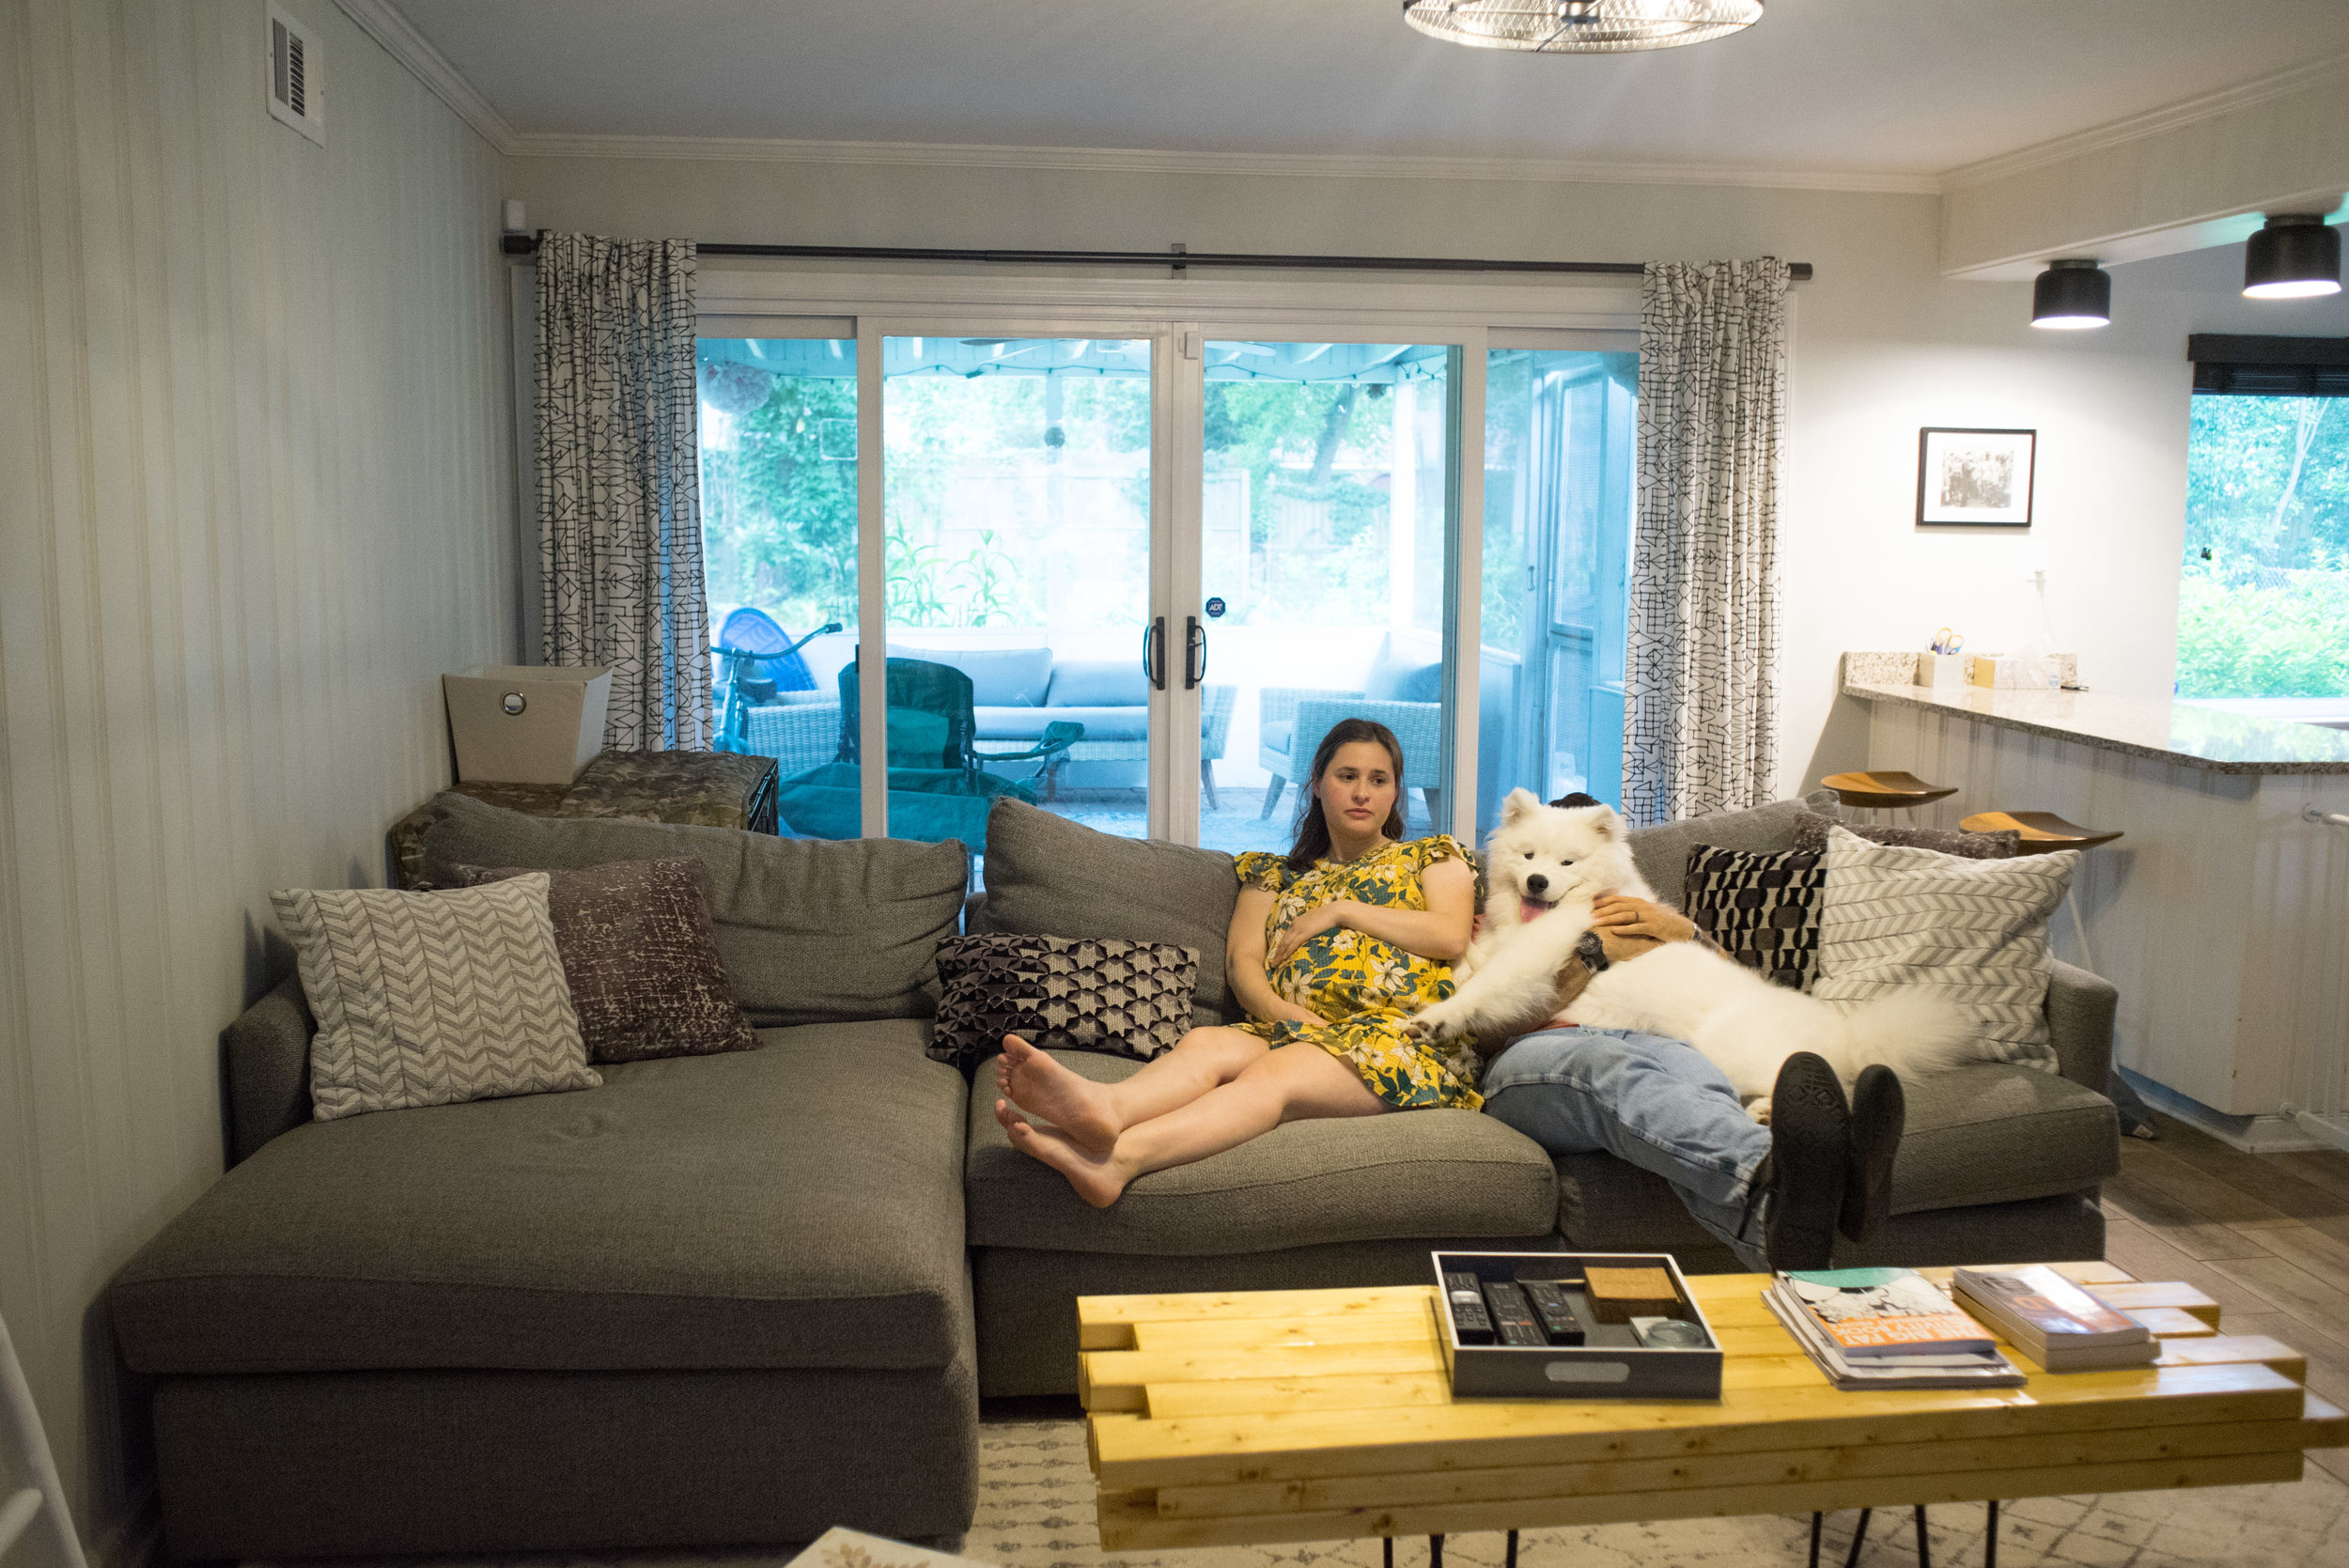 ellie-and-anthony-maternity-photos-june-2018 (11 of 189).jpg